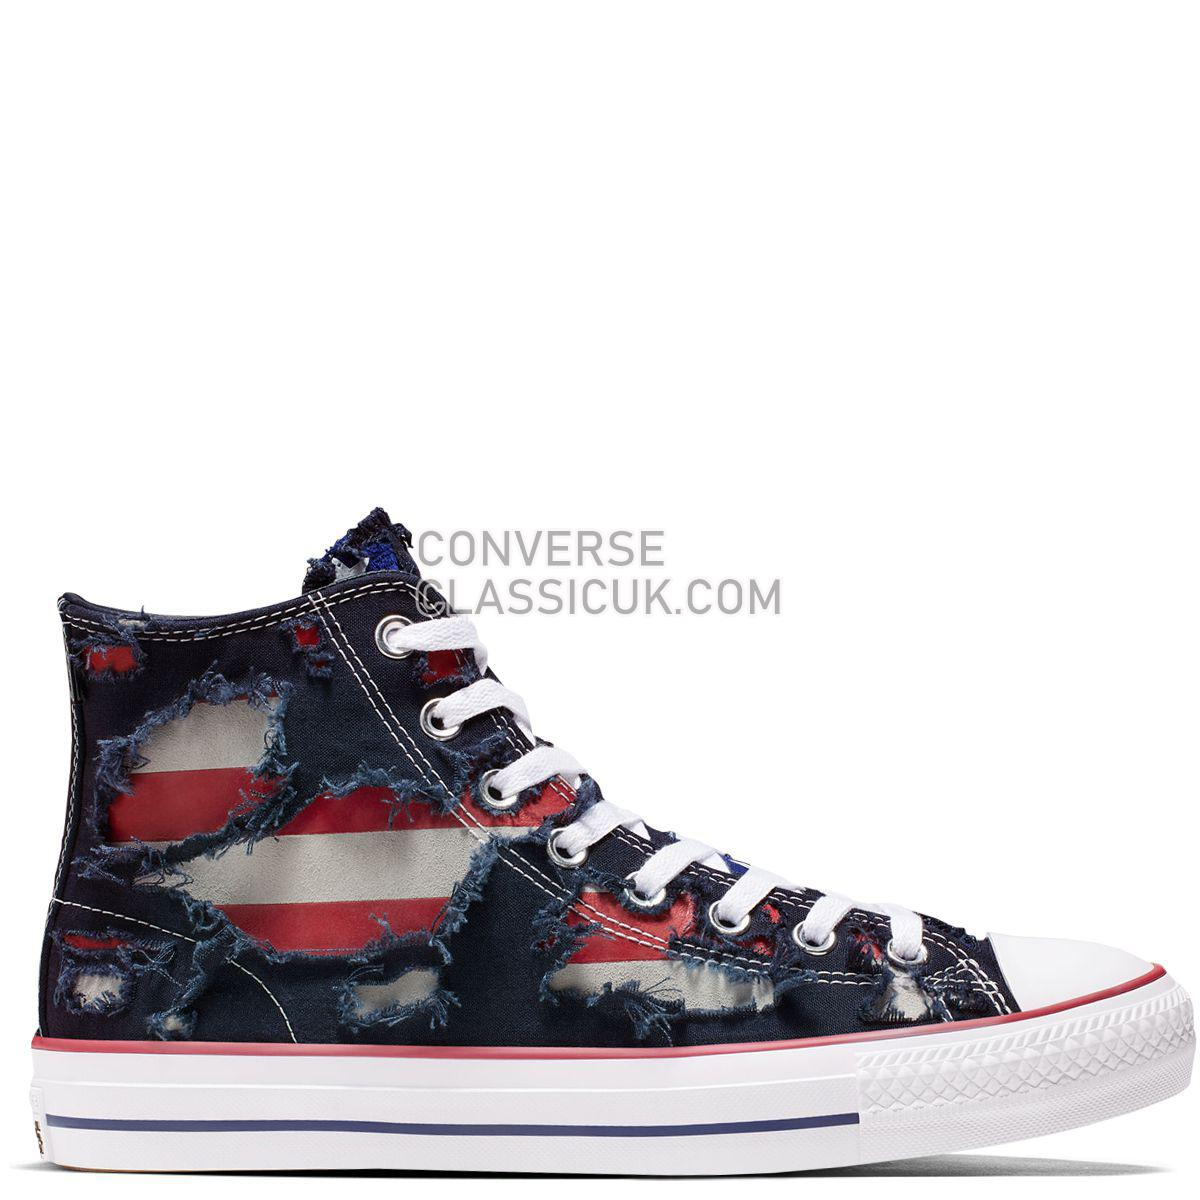 Converse CONS Chuck Taylor All Star Pro Archive Print High Top Obsidian Mens 165338 Obsidian/White/Enamel Red Shoes